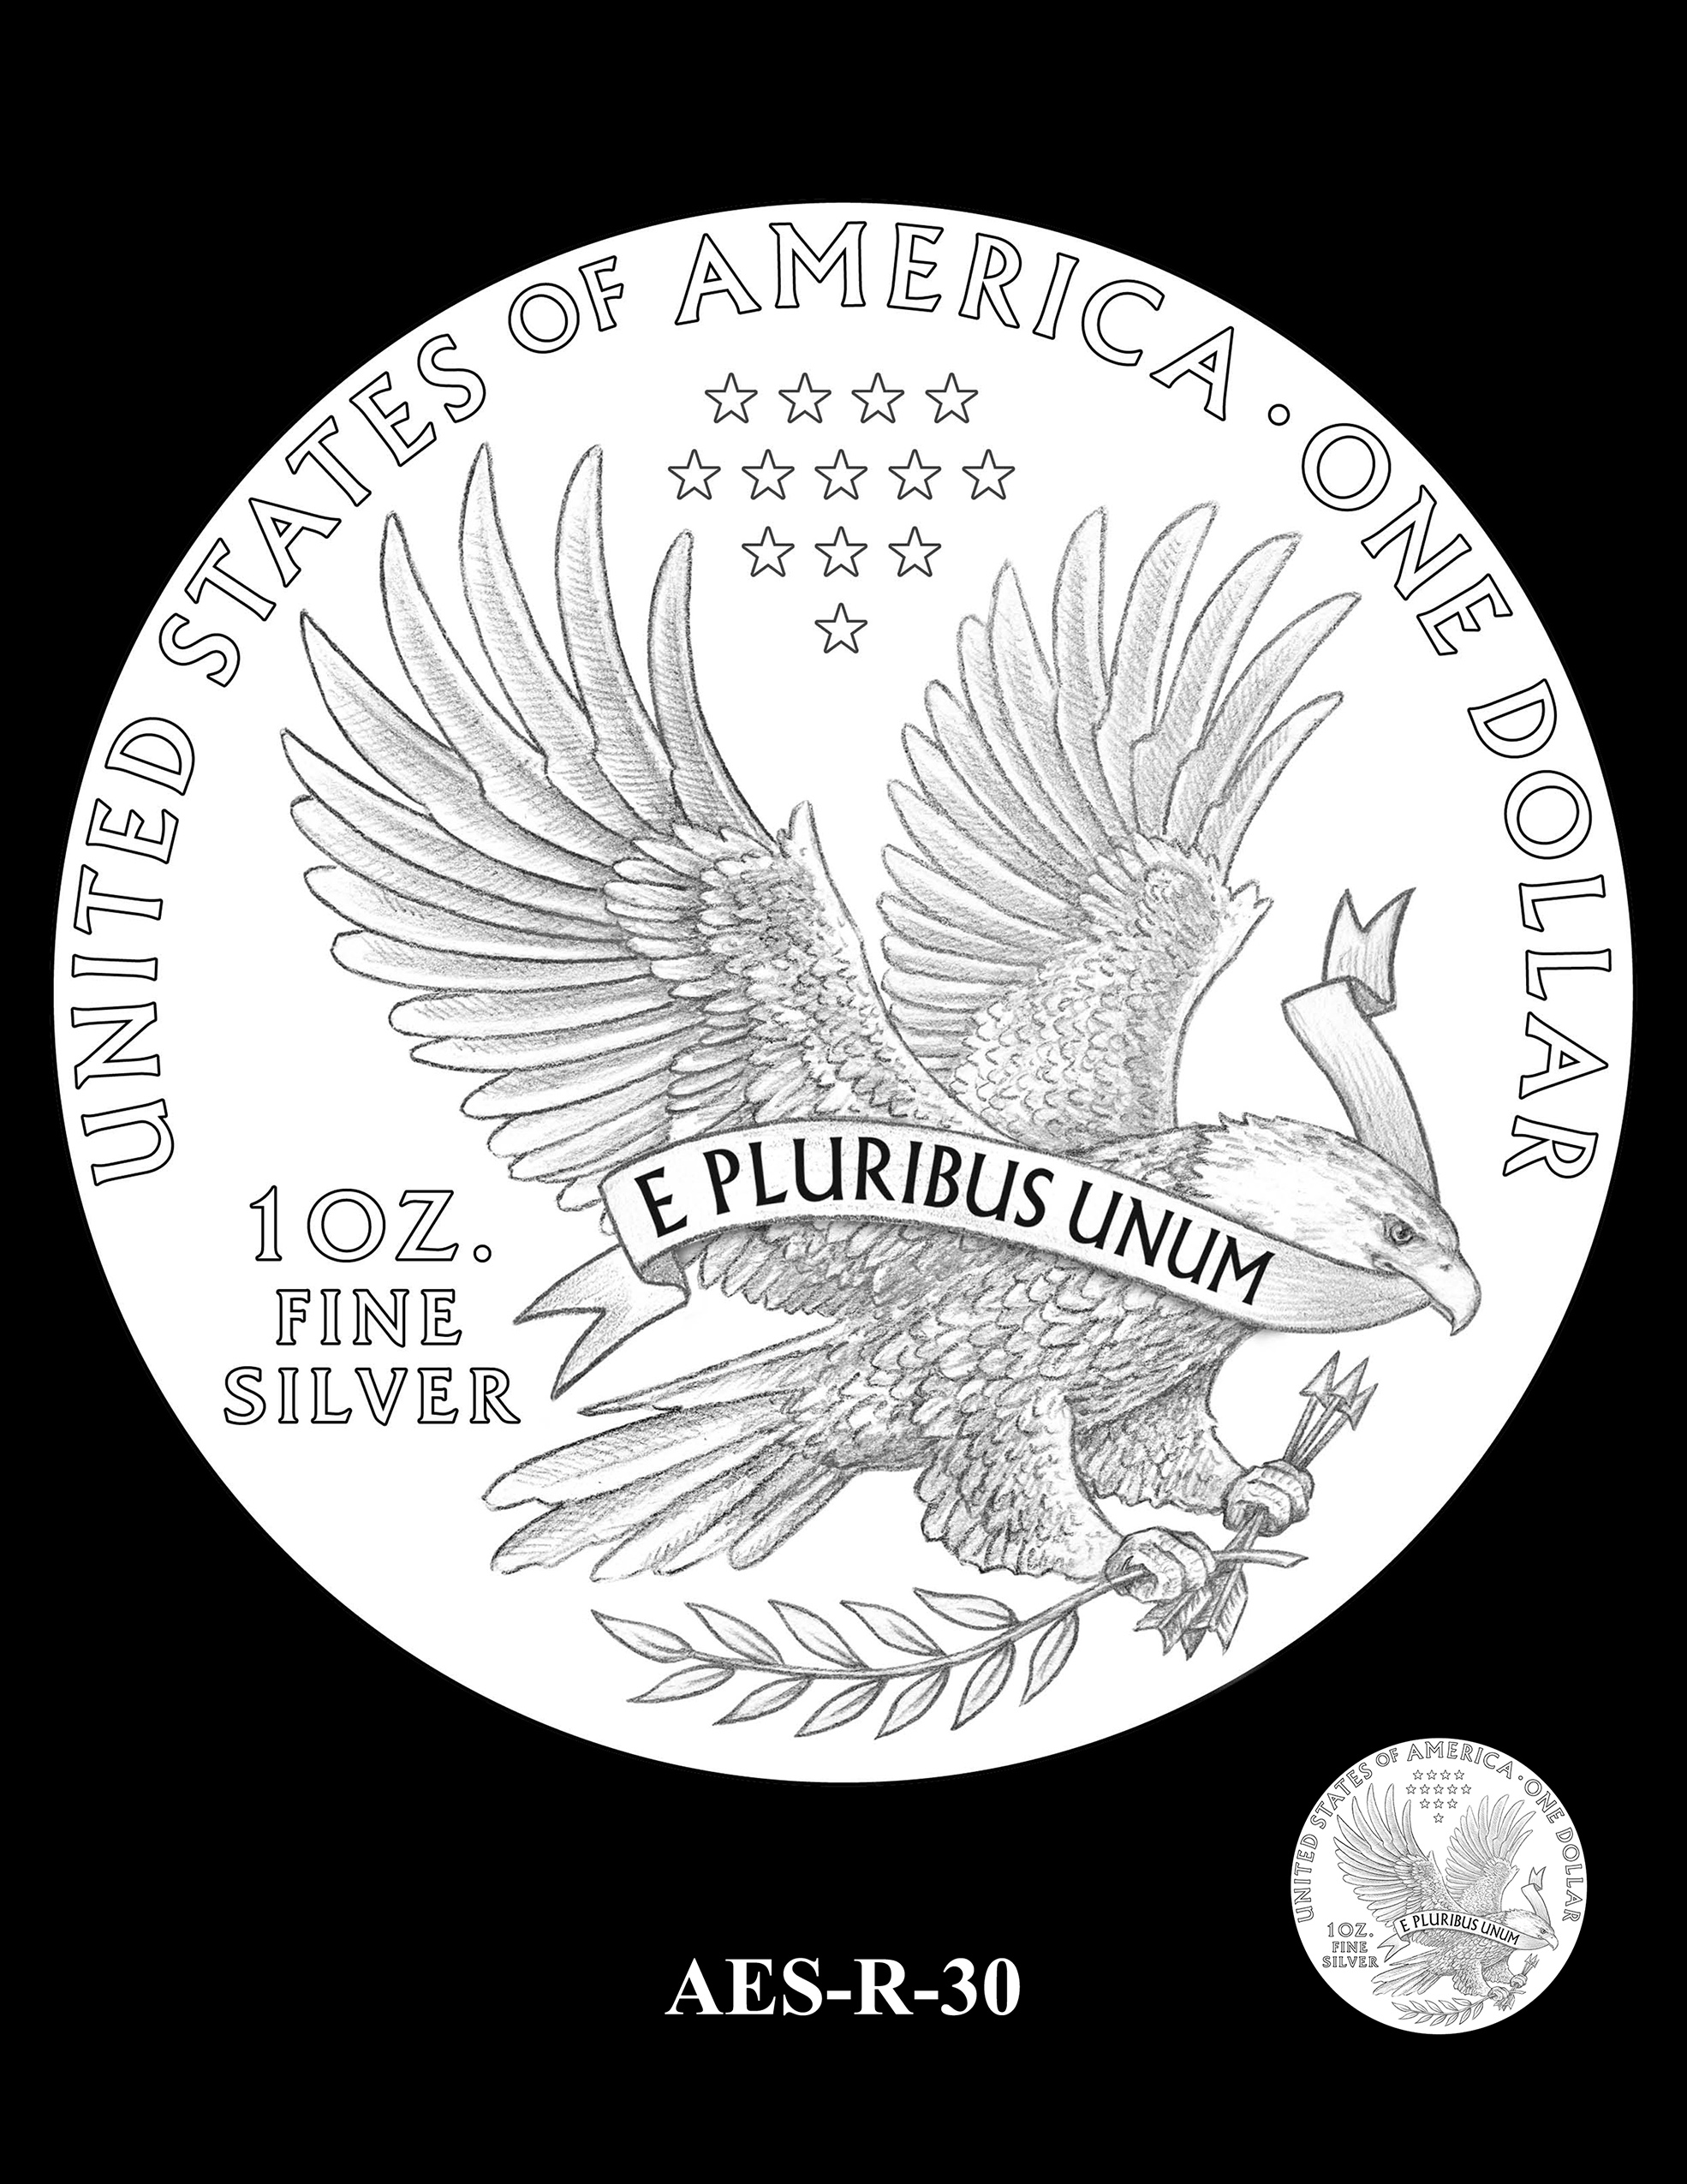 AES-R-30 -- American Eagle Proof and Bullion Silver Coin - Reverse